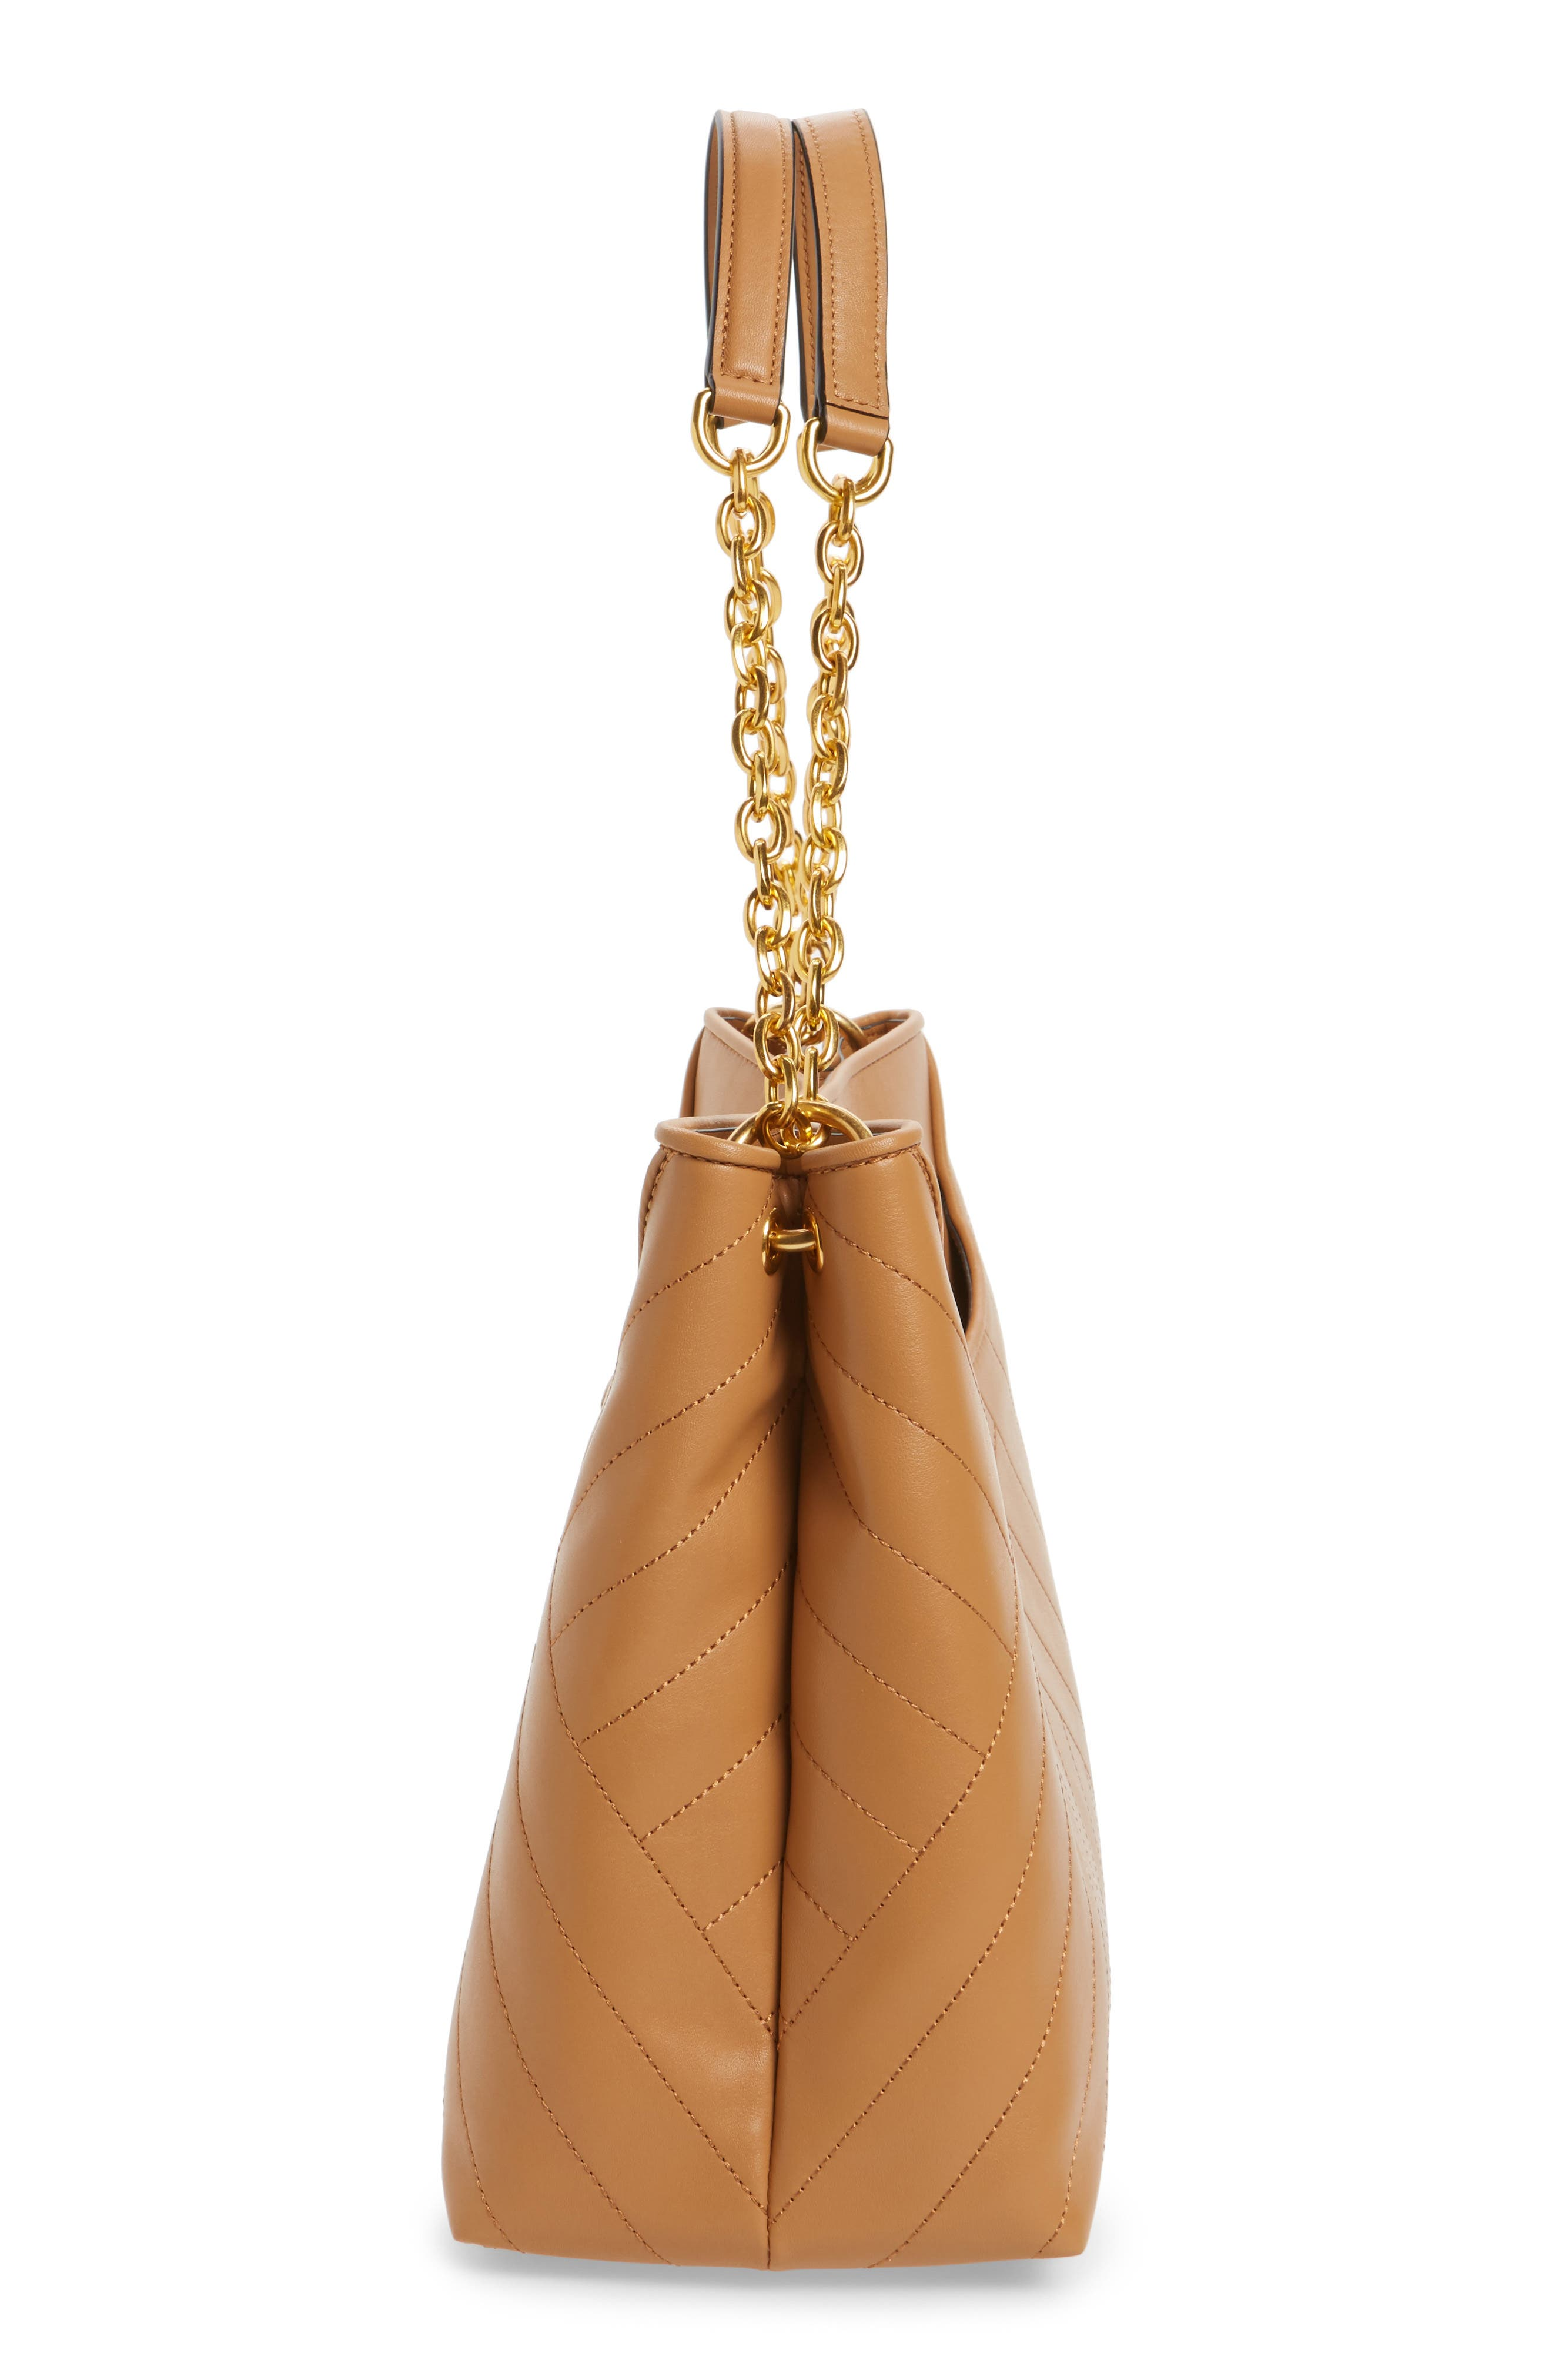 TORY BURCH,                             Alexa Leather Tote,                             Alternate thumbnail 5, color,                             200